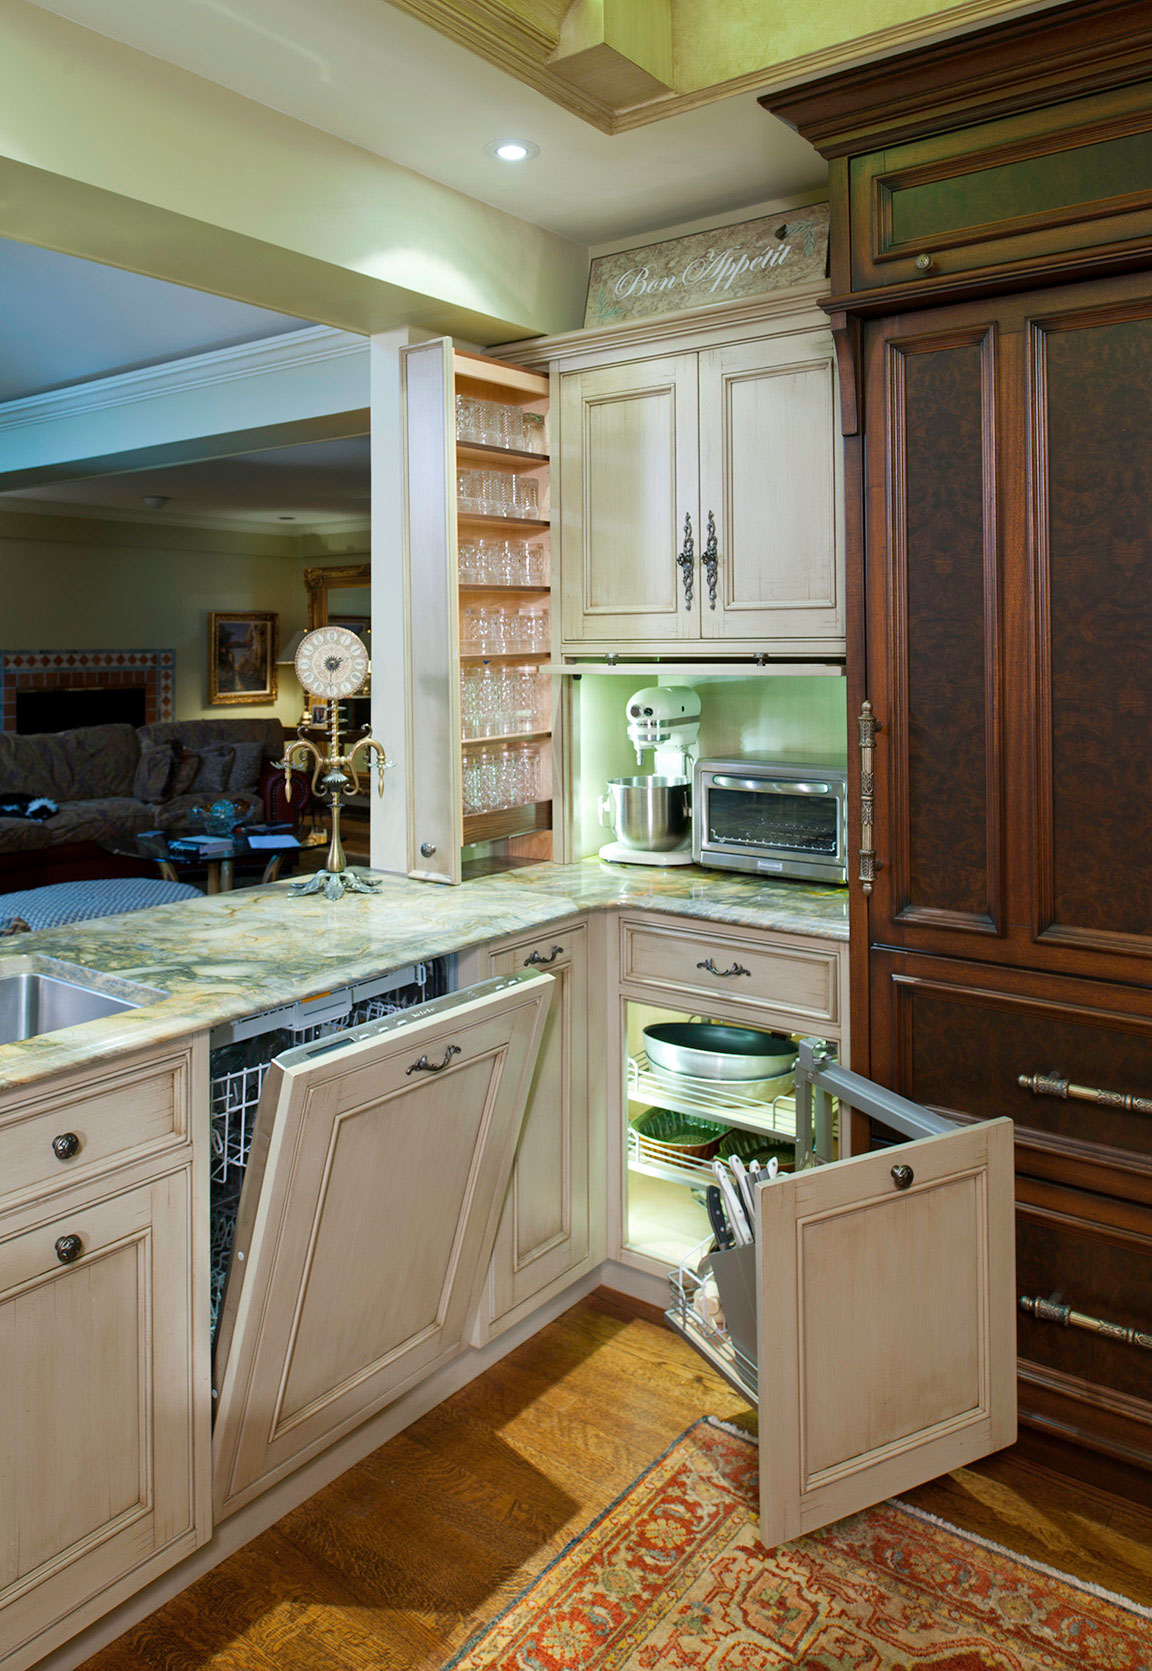 kitchen_bath_Concepts_pittsburgh_traditional_home5_6.jpg